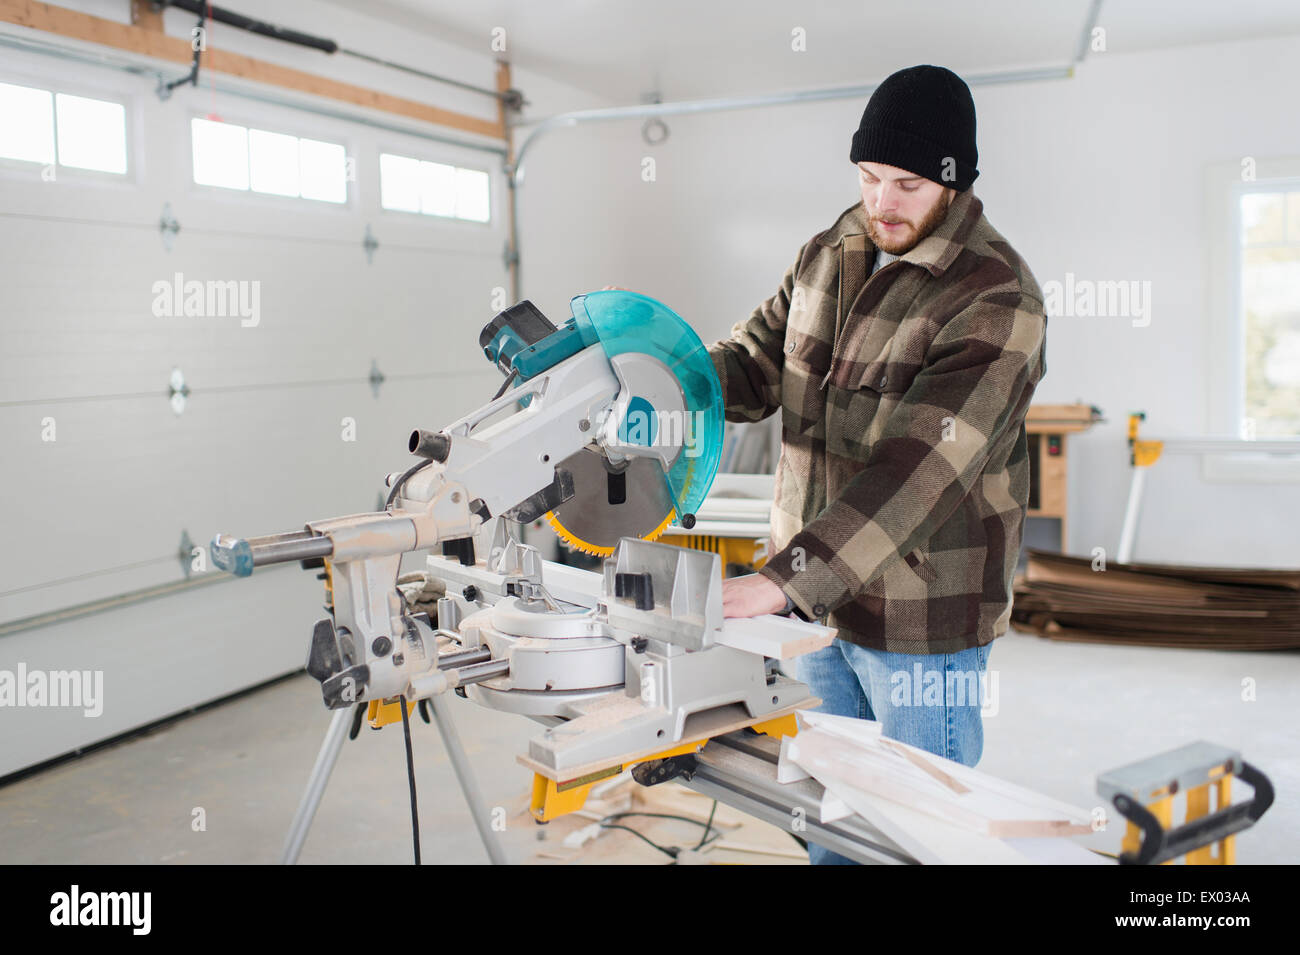 Carpenter working with power tools - Stock Image